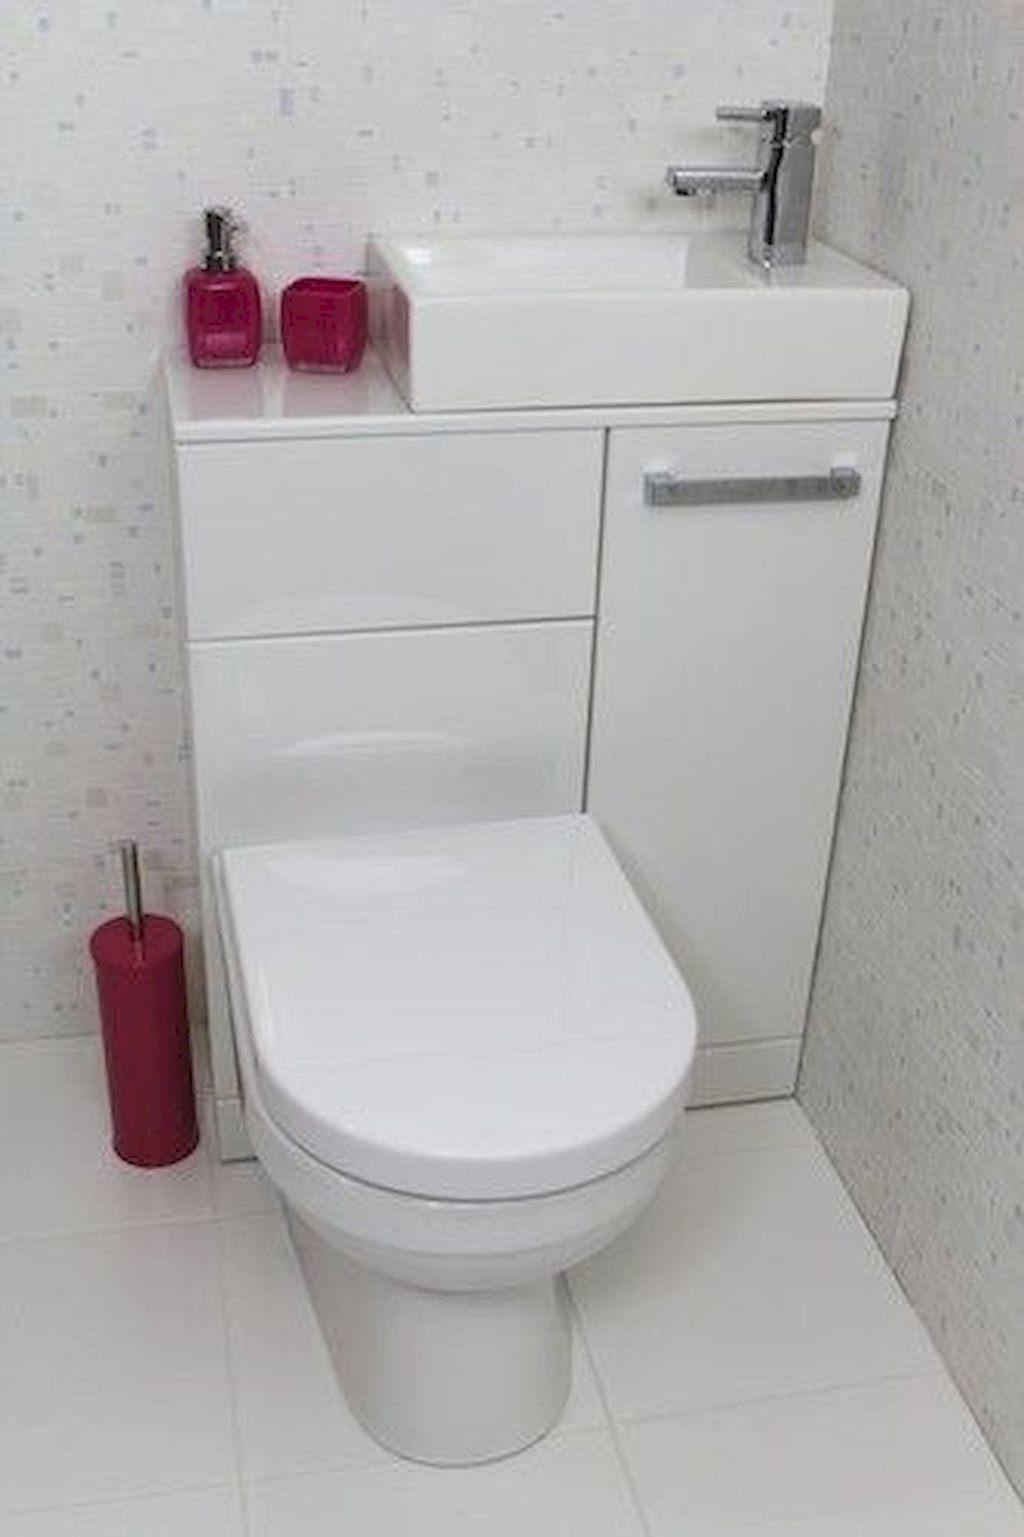 Space Saving Toilet Design For Small Bathroom Tiny House